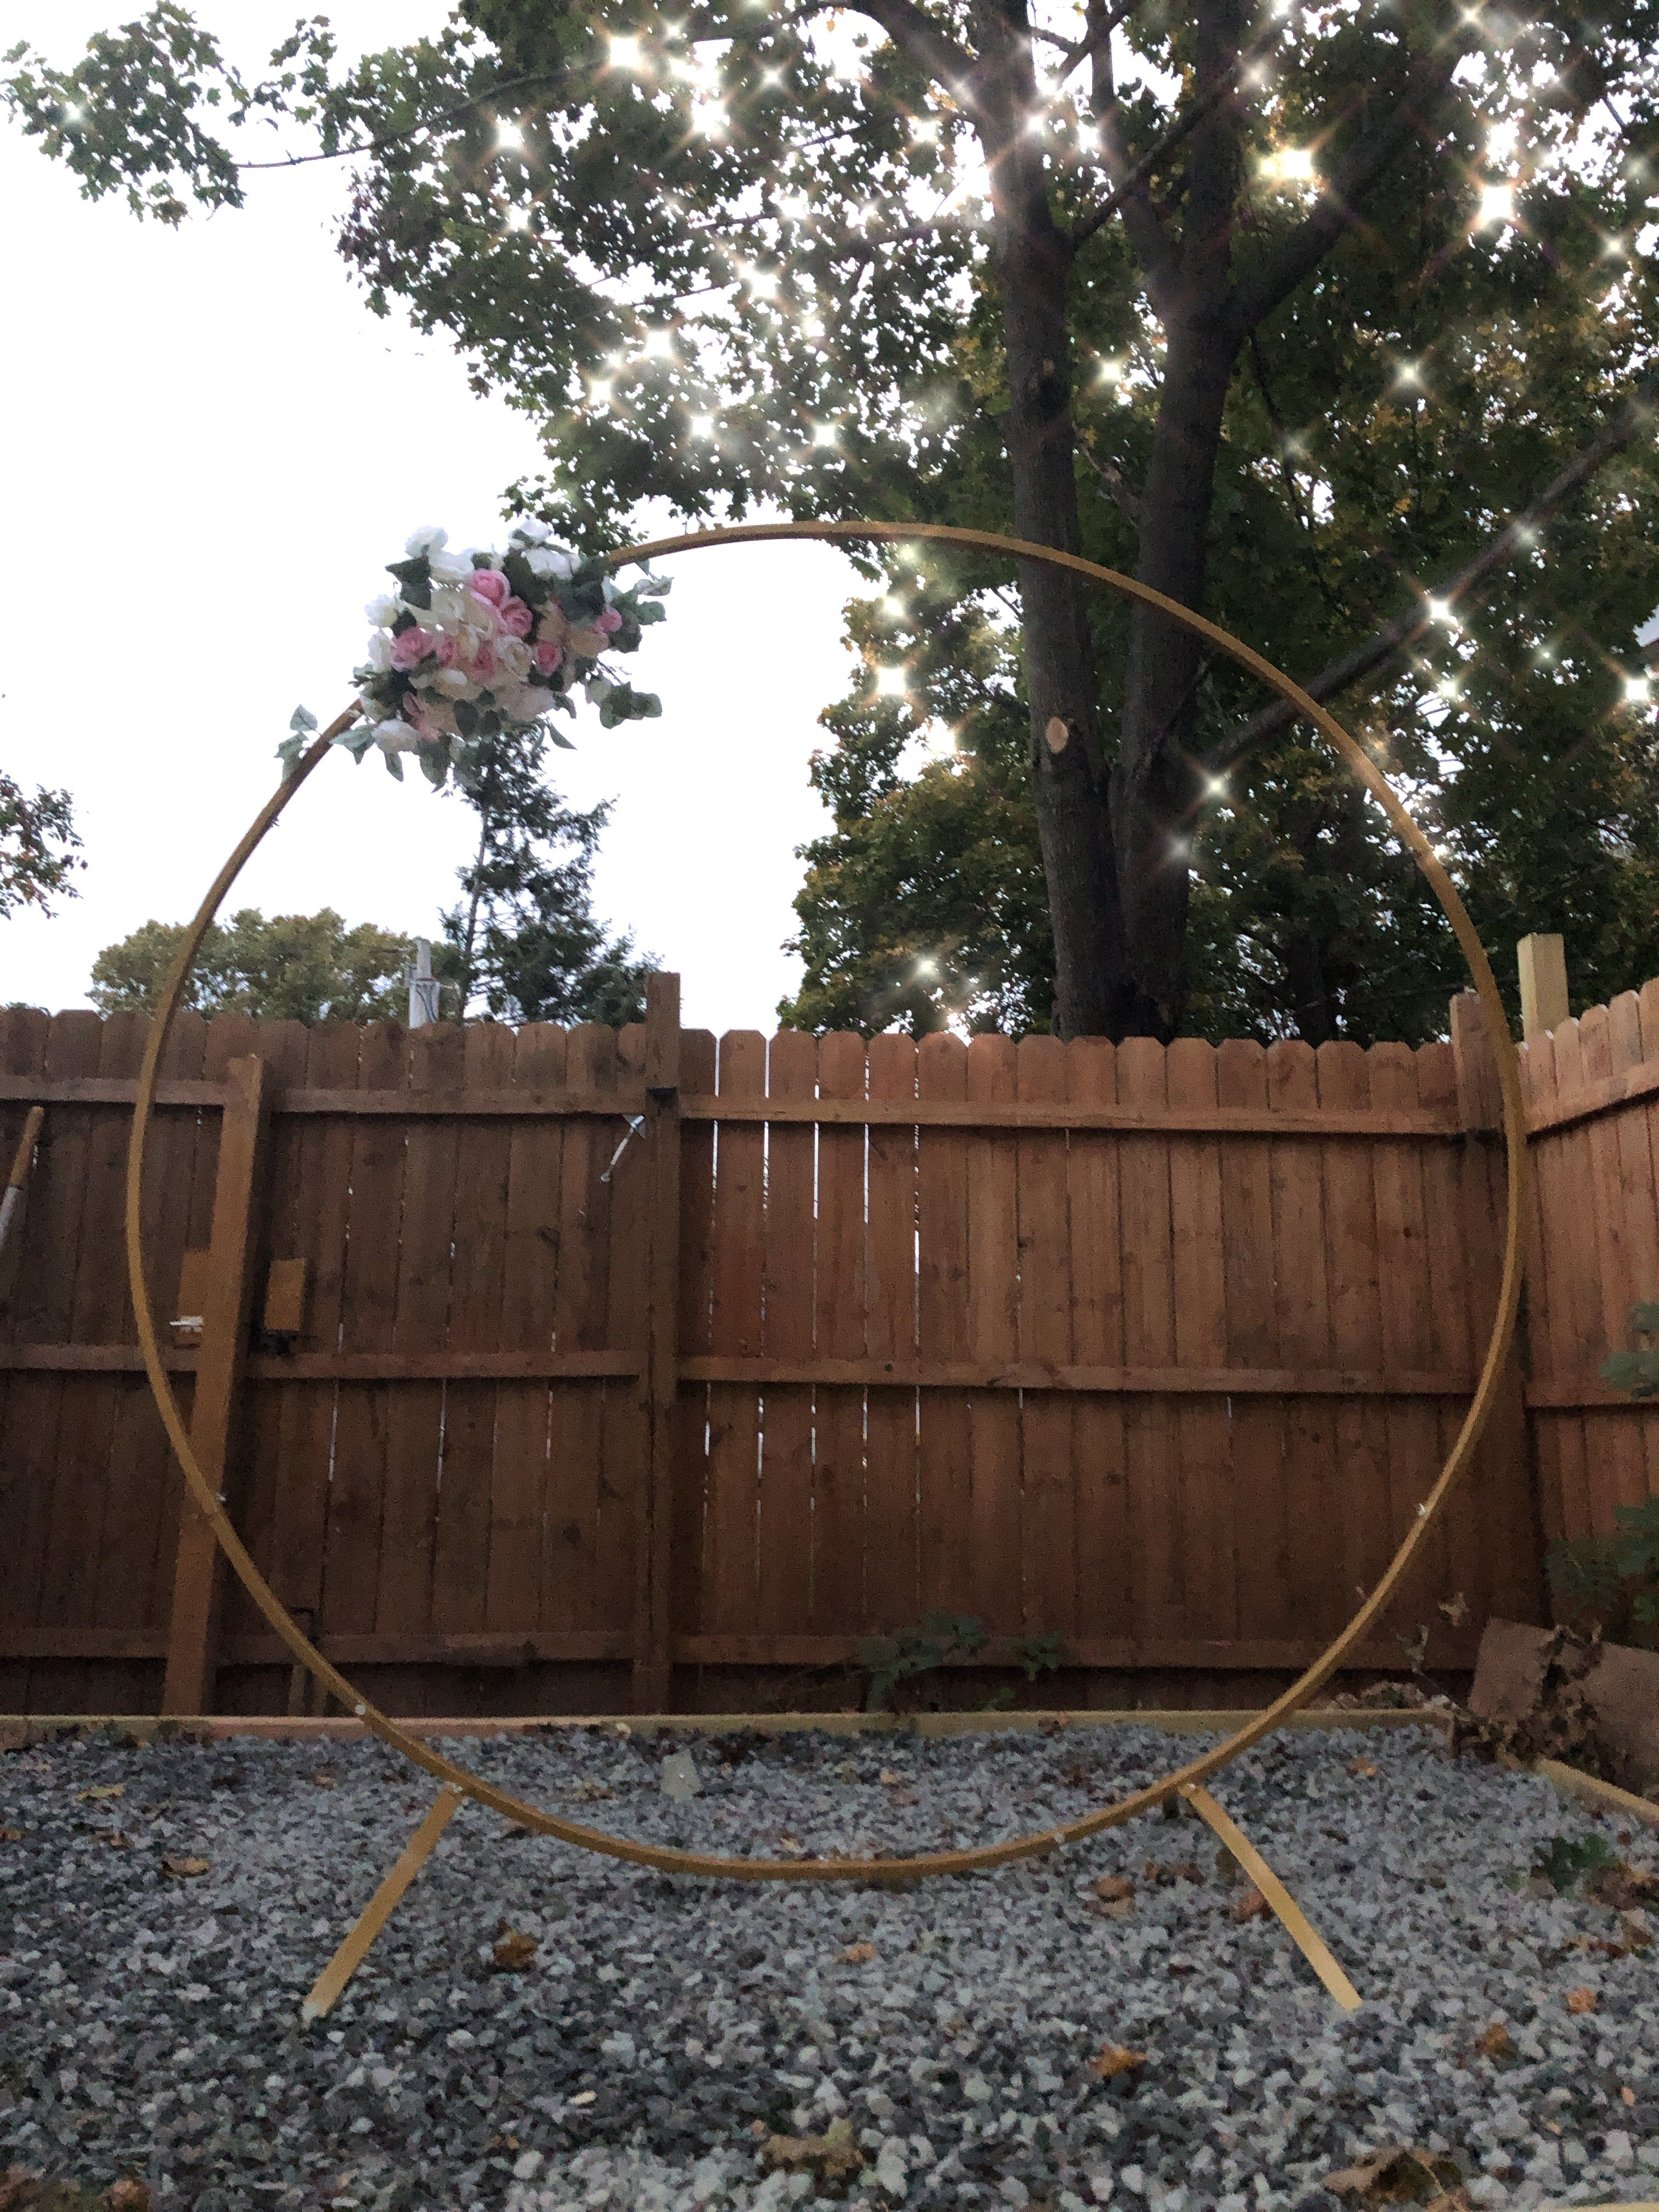 7 FT Tall - Gold Round Metal Arch/ Backdrop